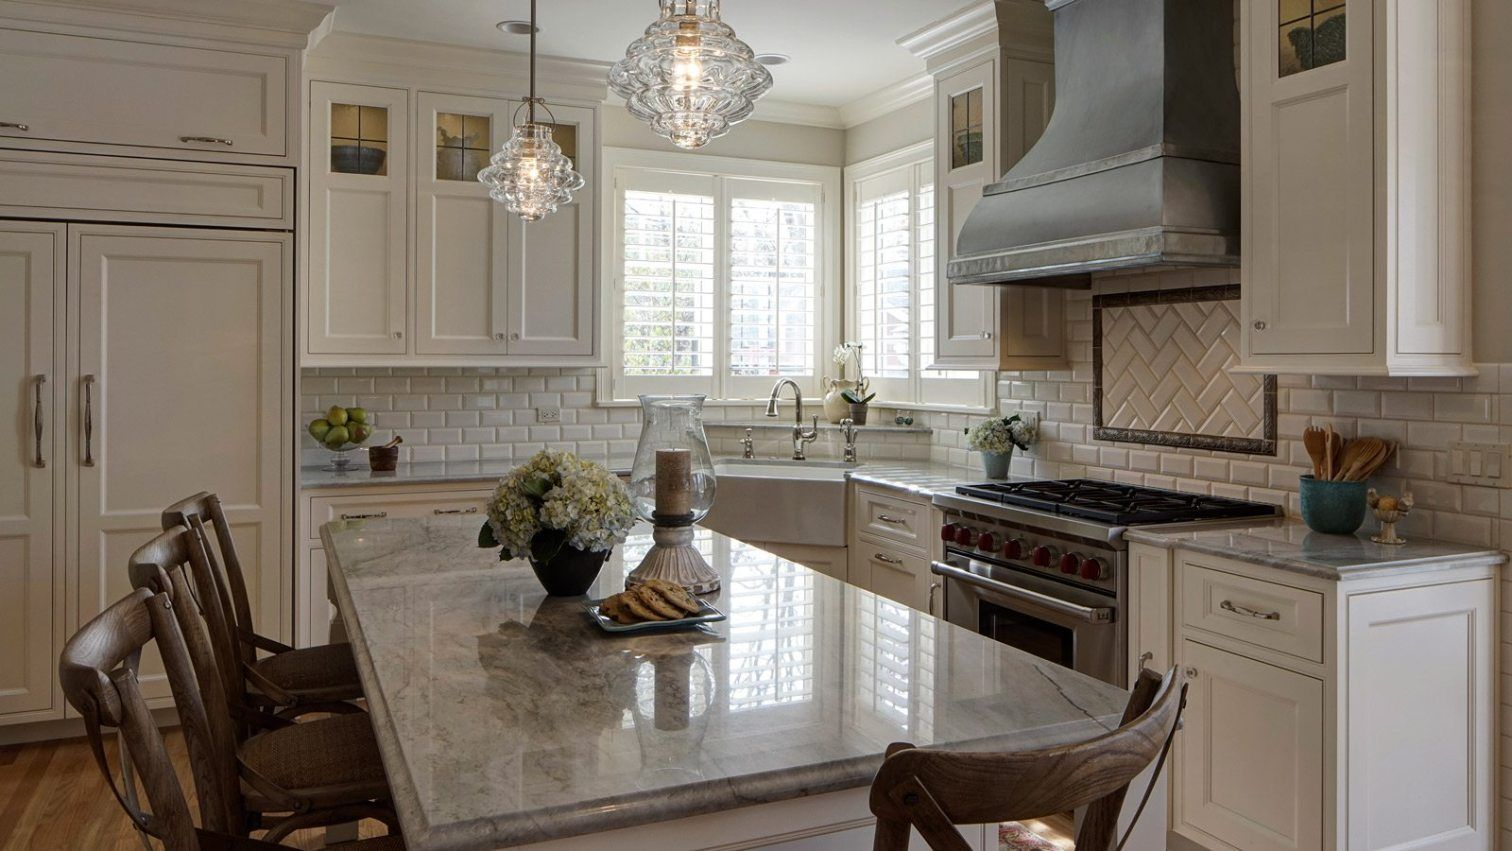 Groovy 1600 X 900 Recherche Soft White Kitchen Naperville Drury Download Free Architecture Designs Xerocsunscenecom